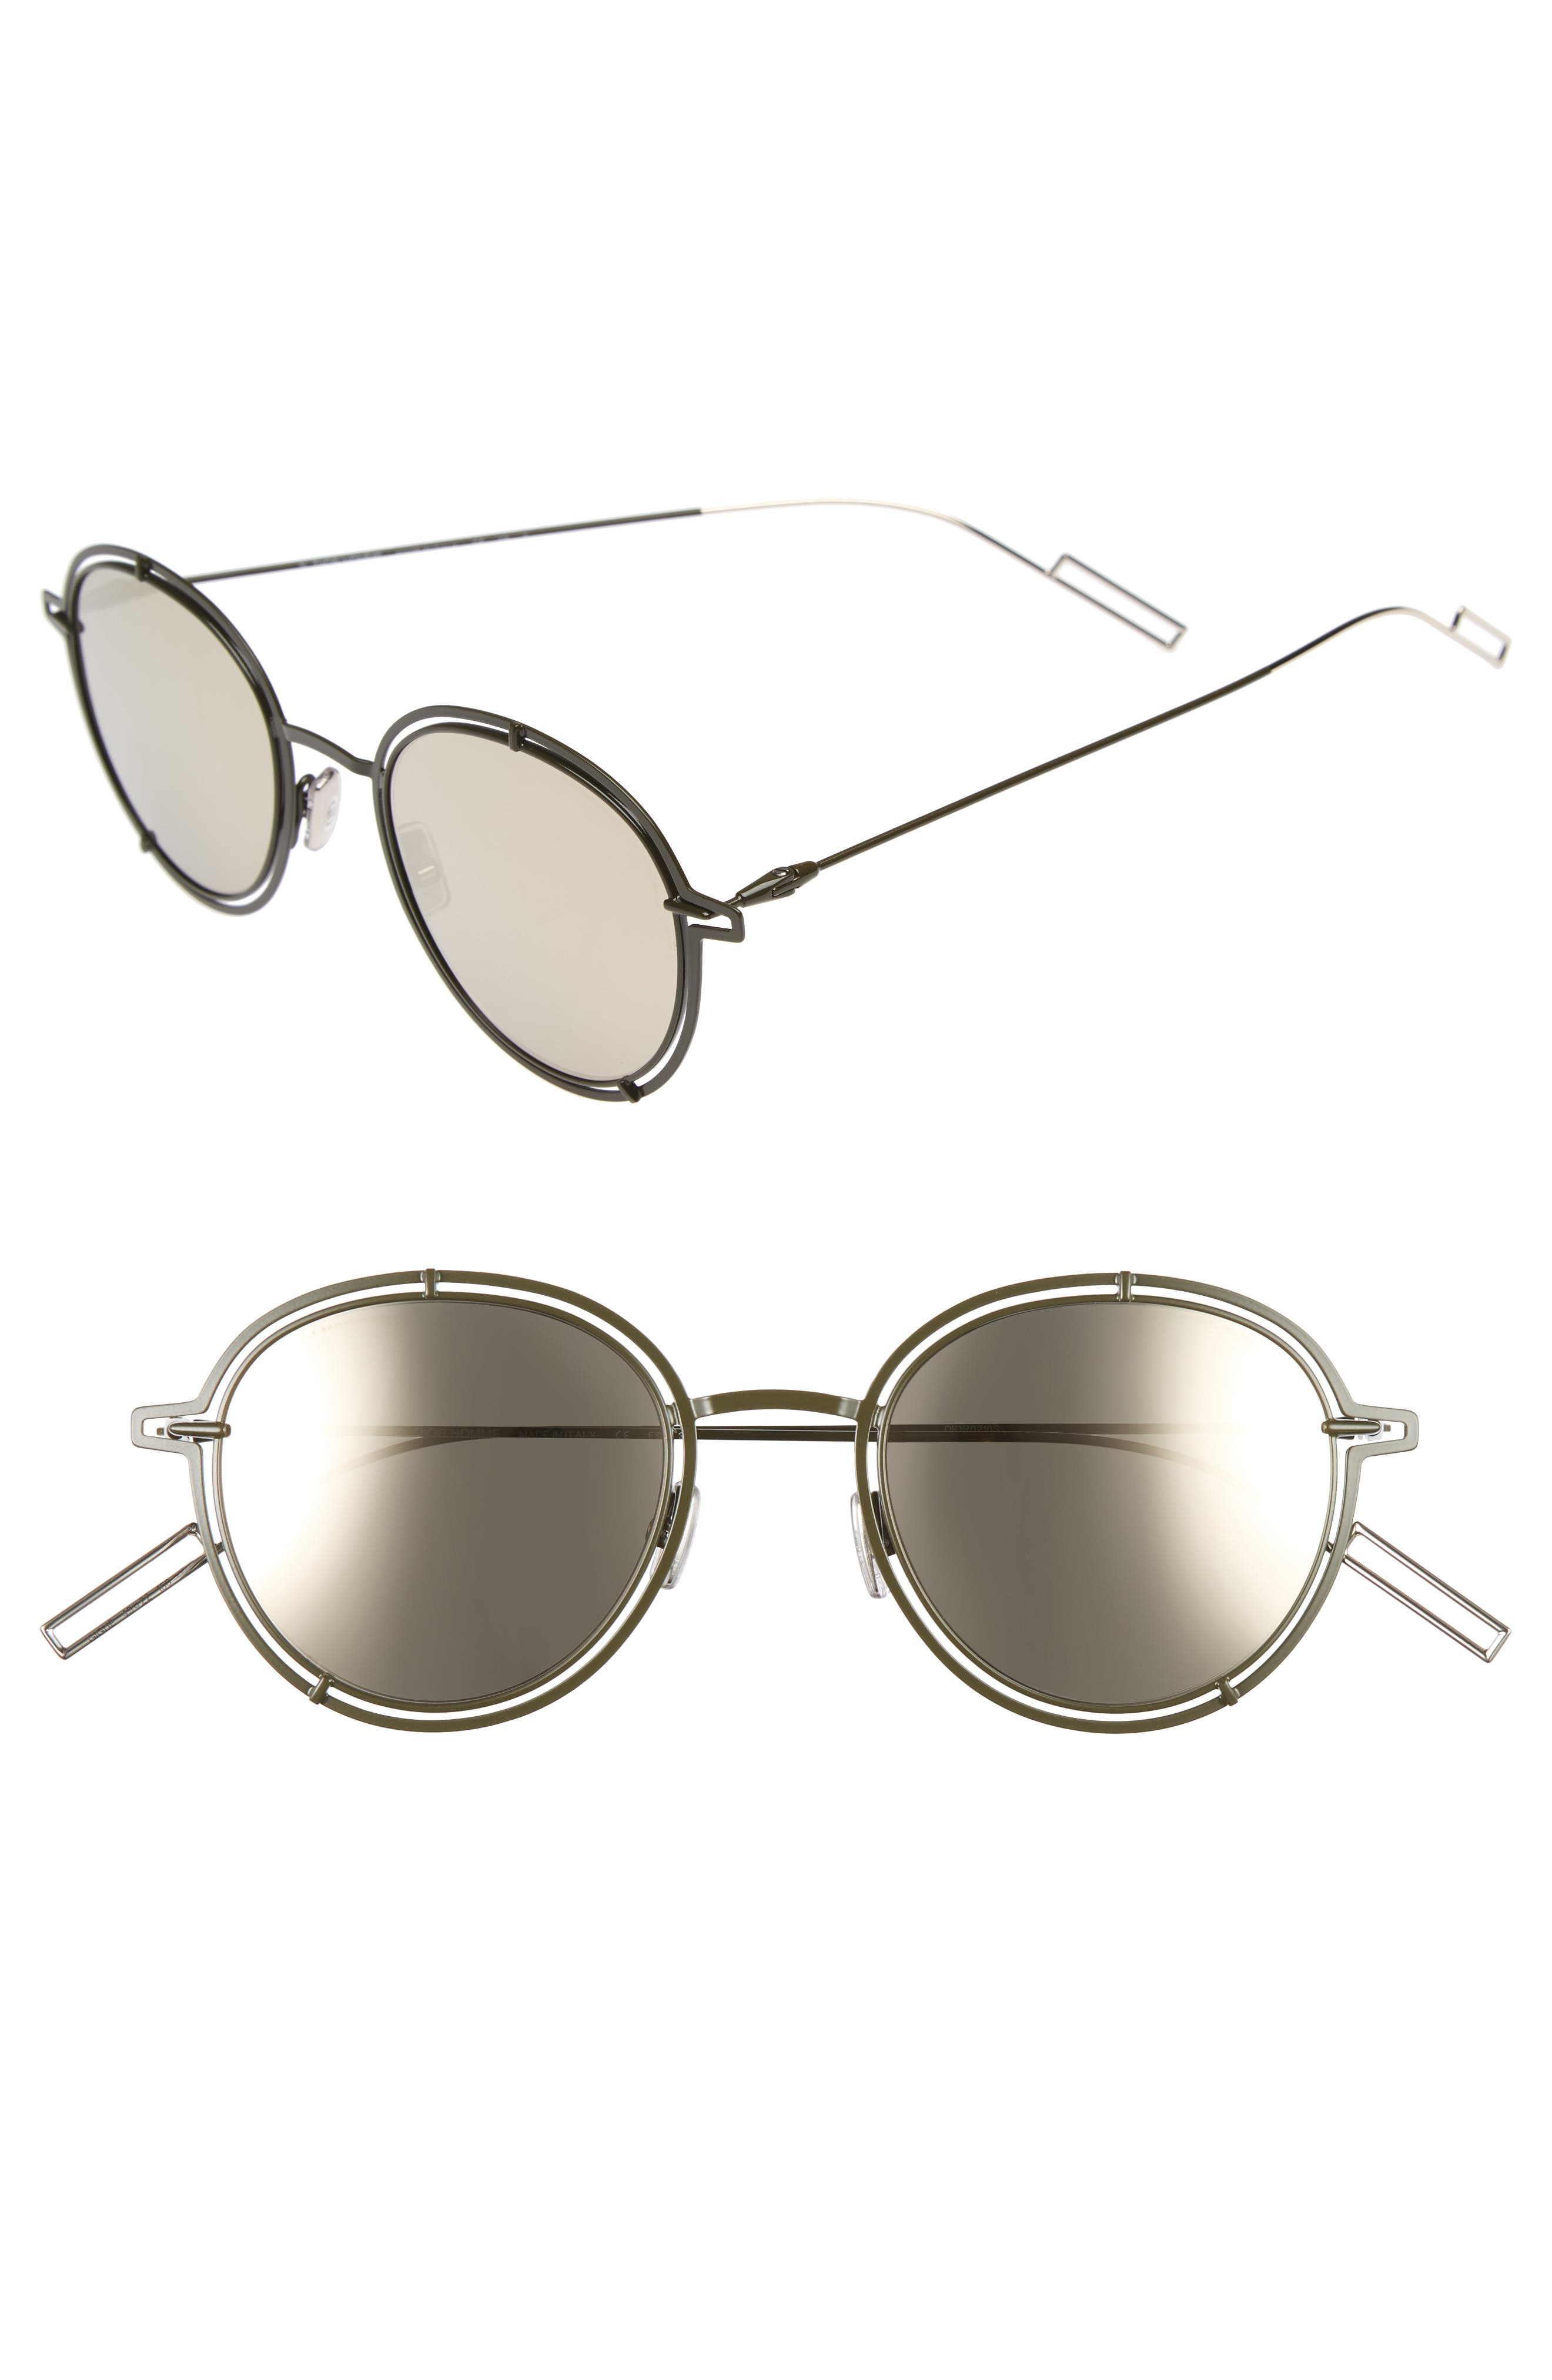 Main Image - Dior Homme 49mm Round Sunglasses